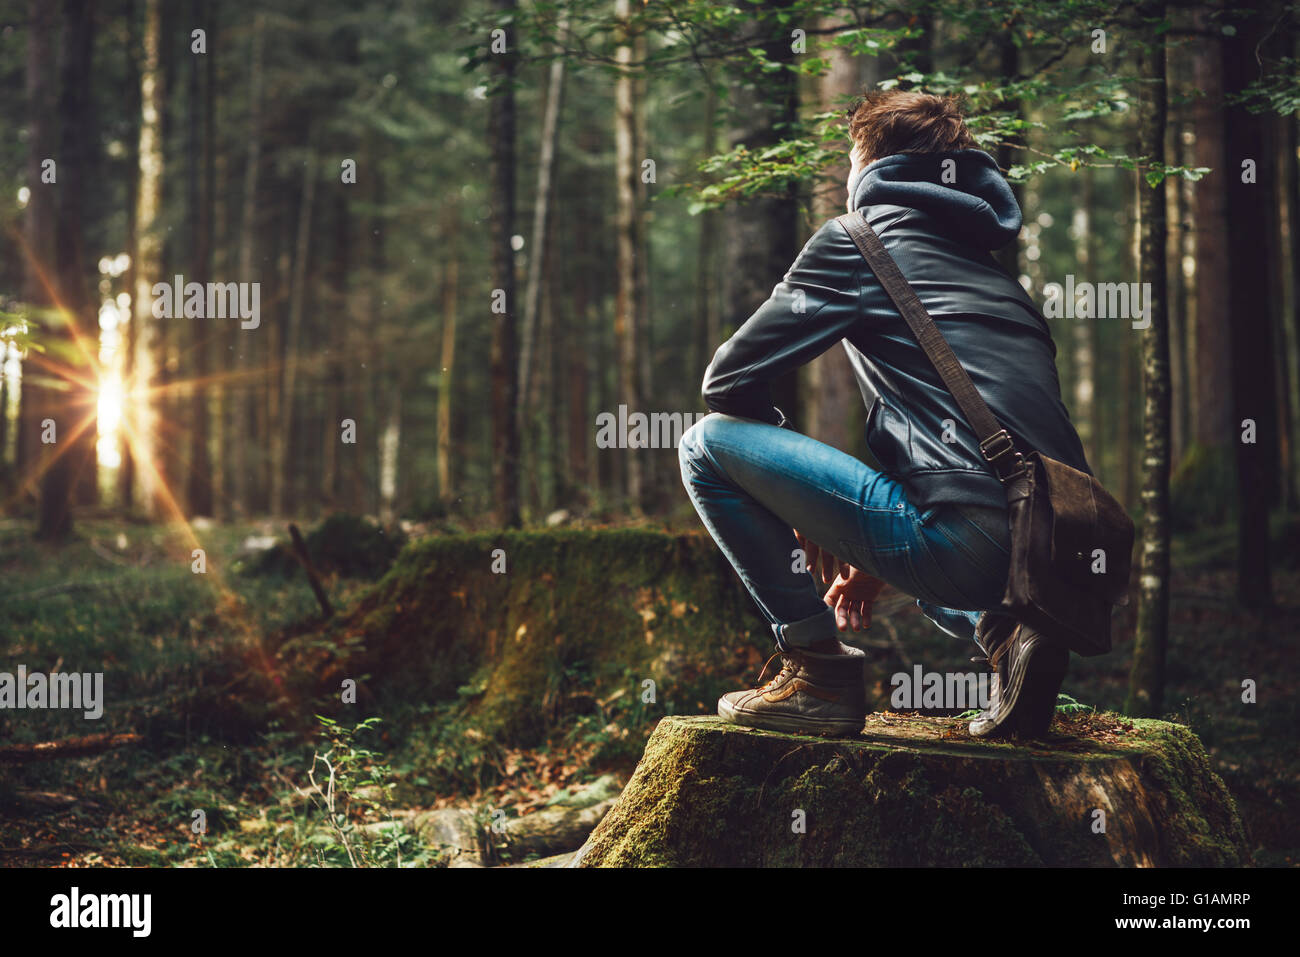 Young handsome man exploring the forest and looking around, nature and freedom concept Stock Photo